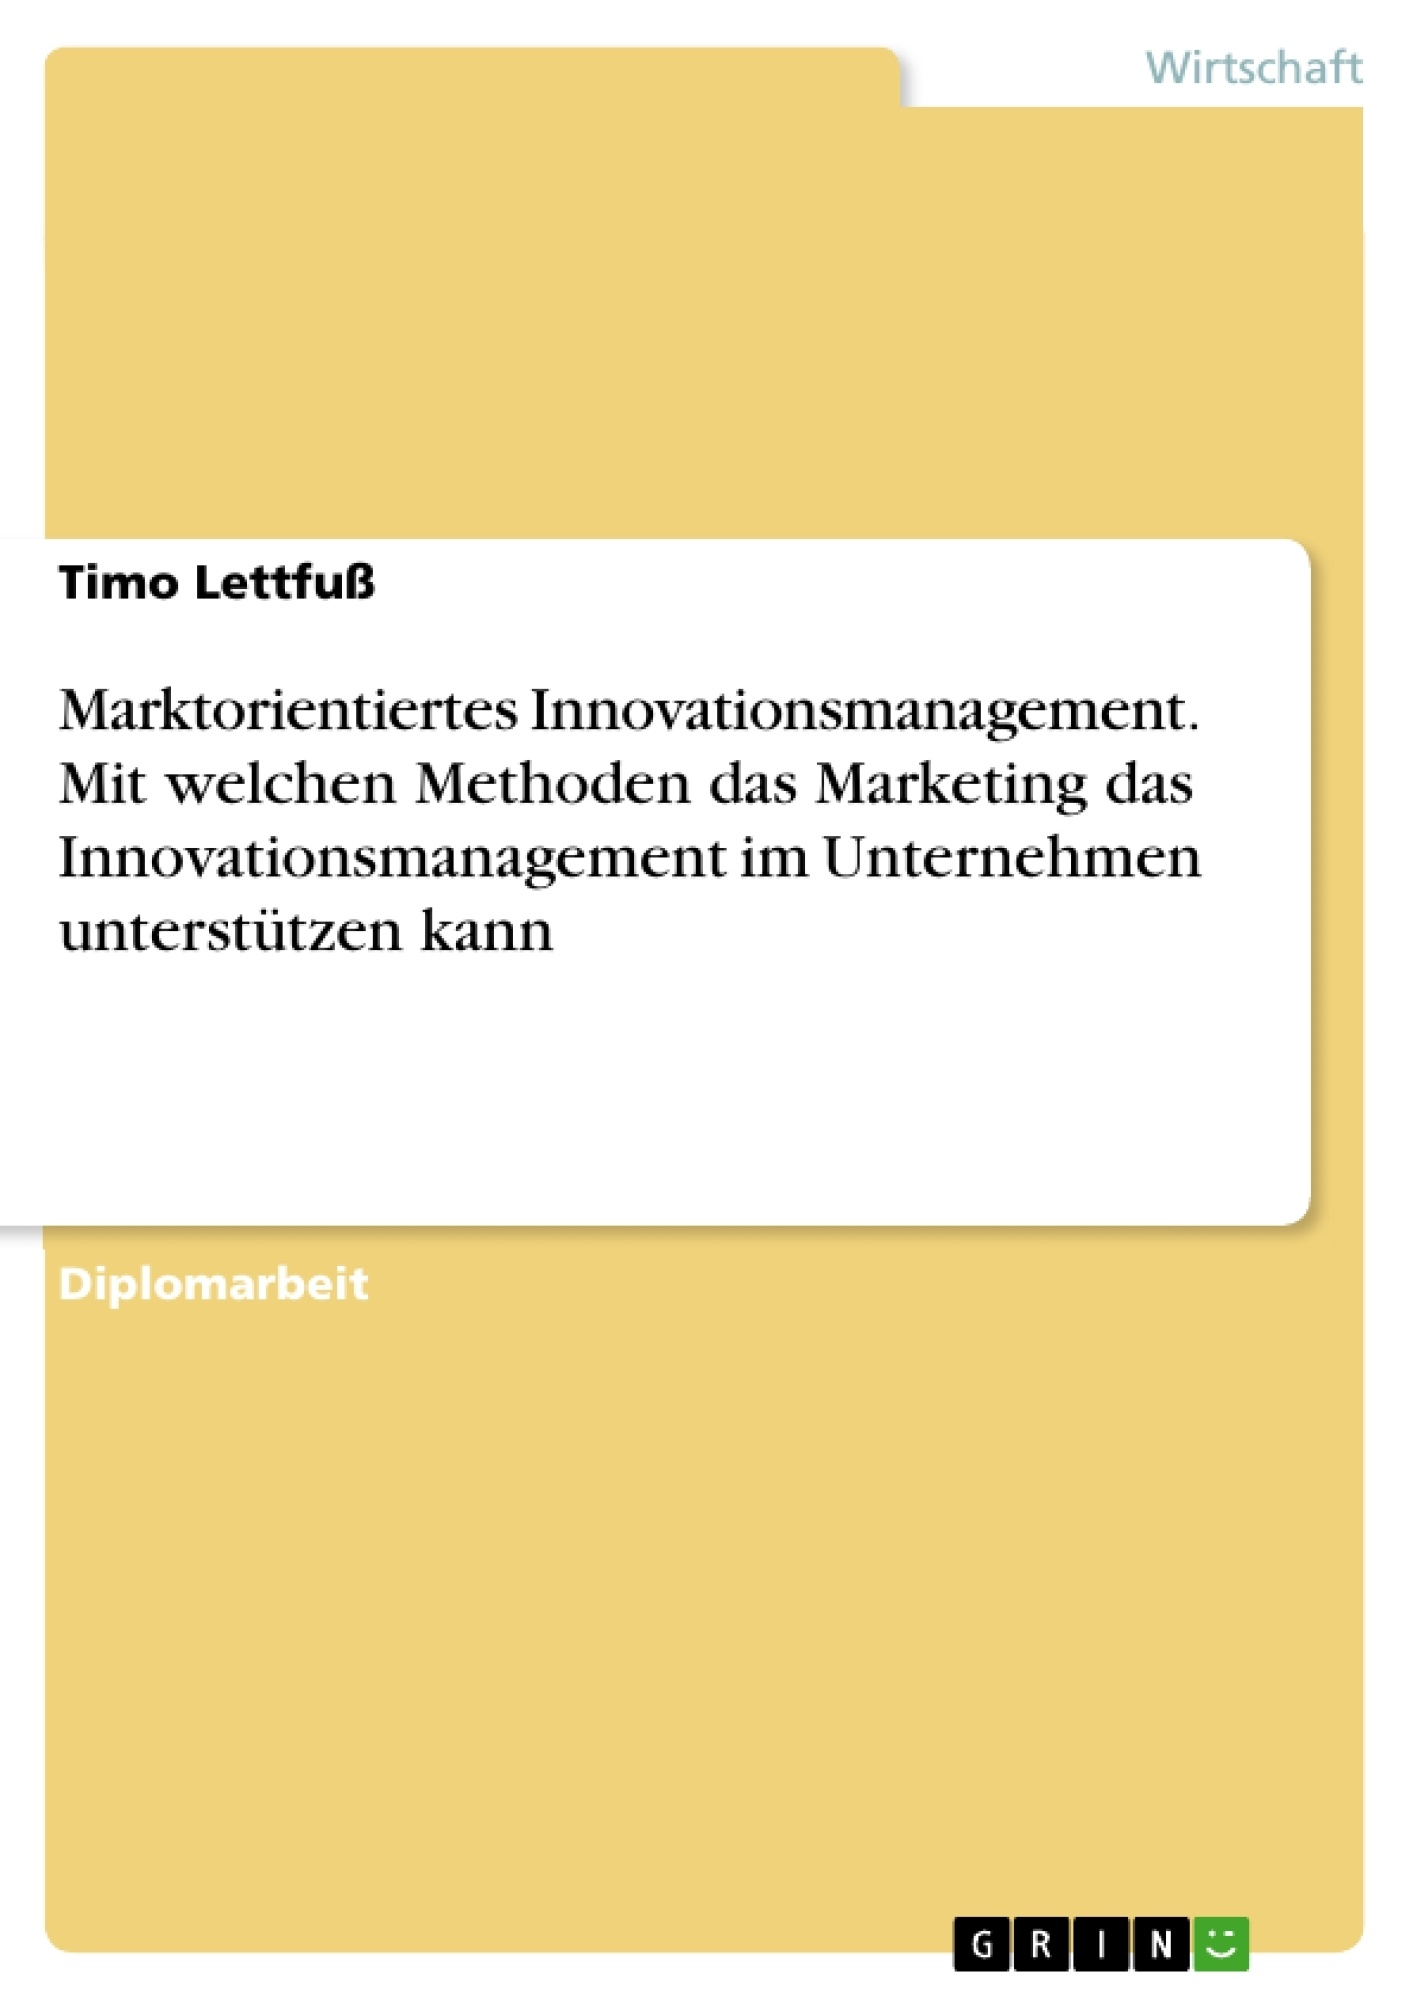 Titel: Marktorientiertes Innovationsmanagement. Mit welchen Methoden das Marketing das Innovationsmanagement im Unternehmen unterstützen kann